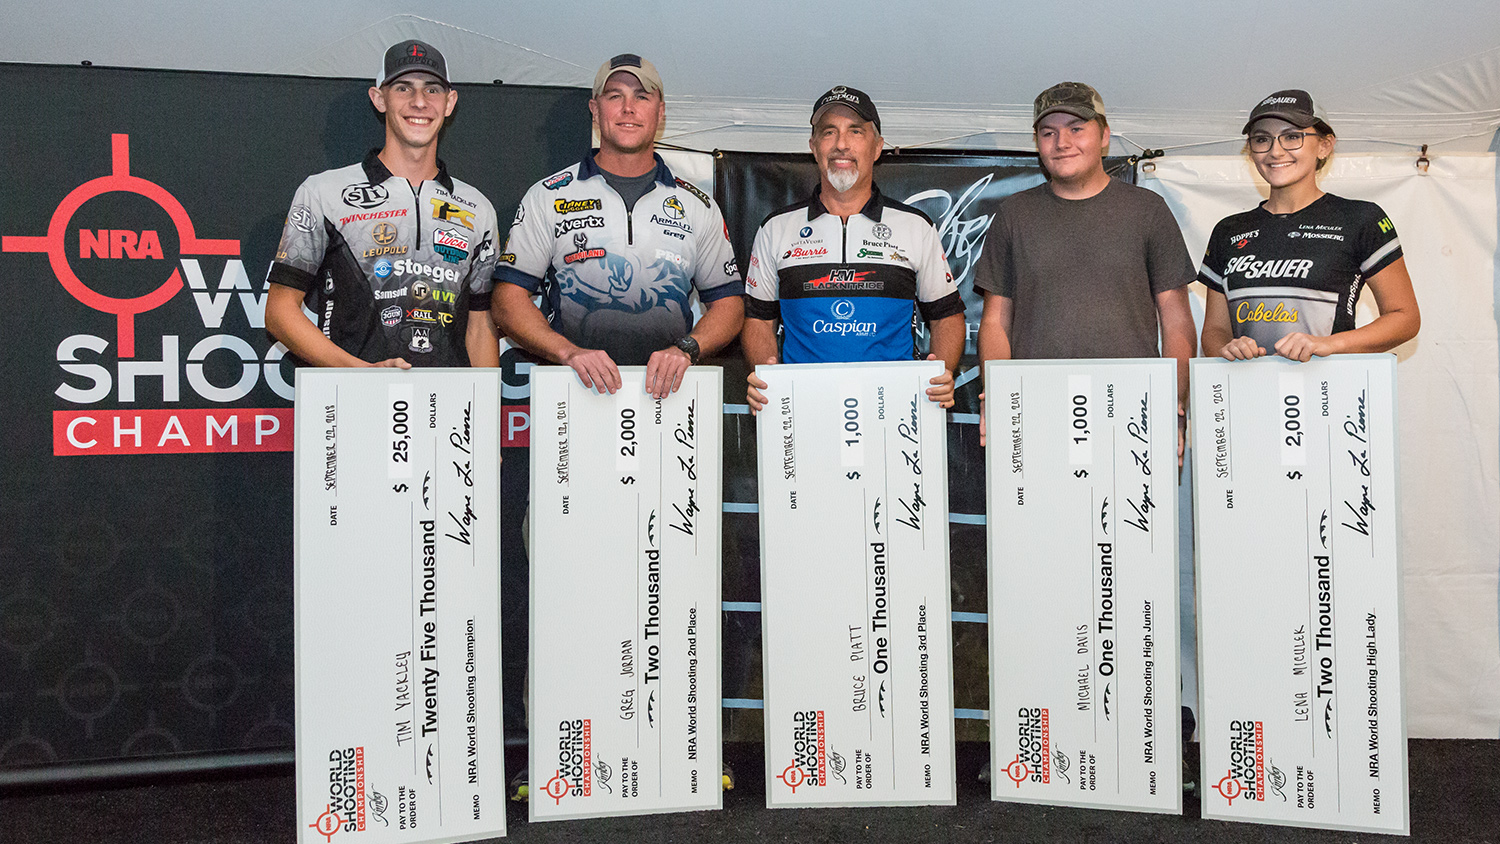 History-Making NRA World Shooting Championship Concludes Memorable 2018 Competition Season